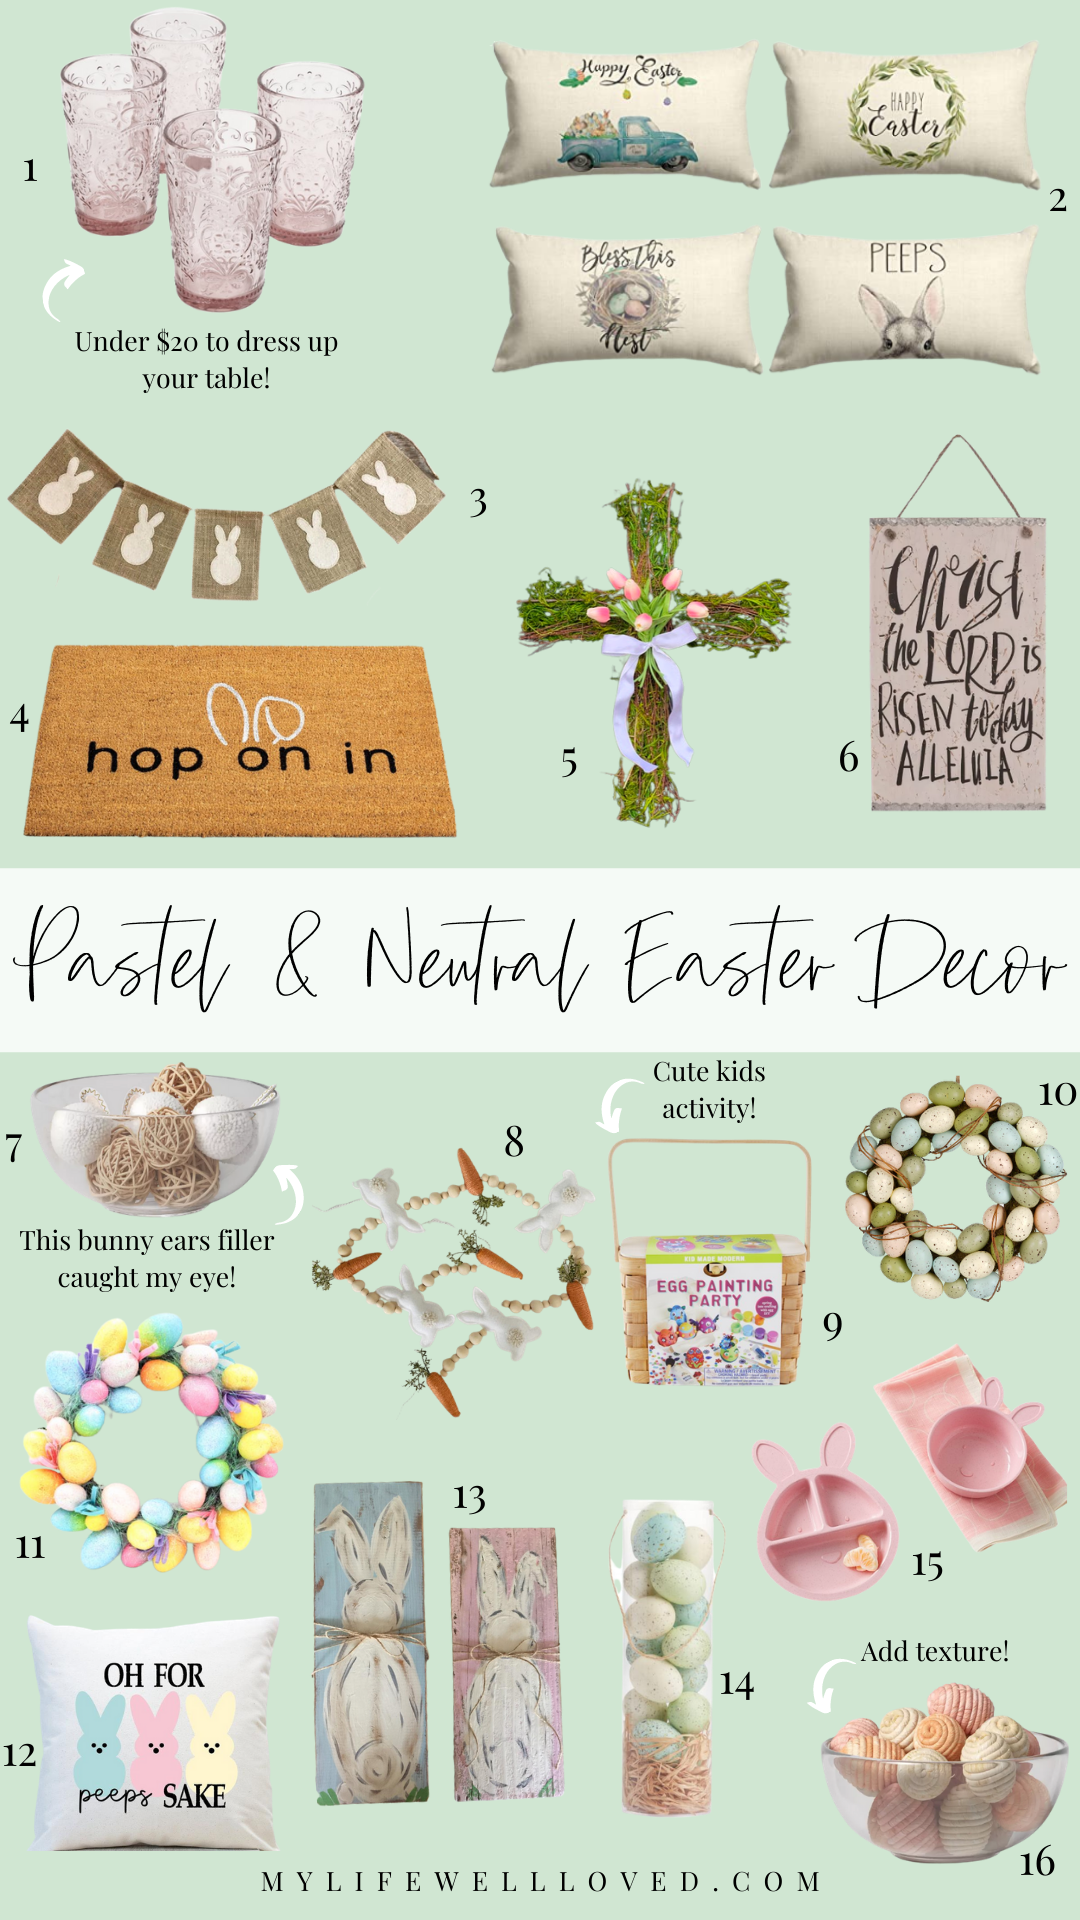 Target Easter Decor Favorites by Alabama Home + Lifestyle blogger, Heather Brown // My Life Well Loved